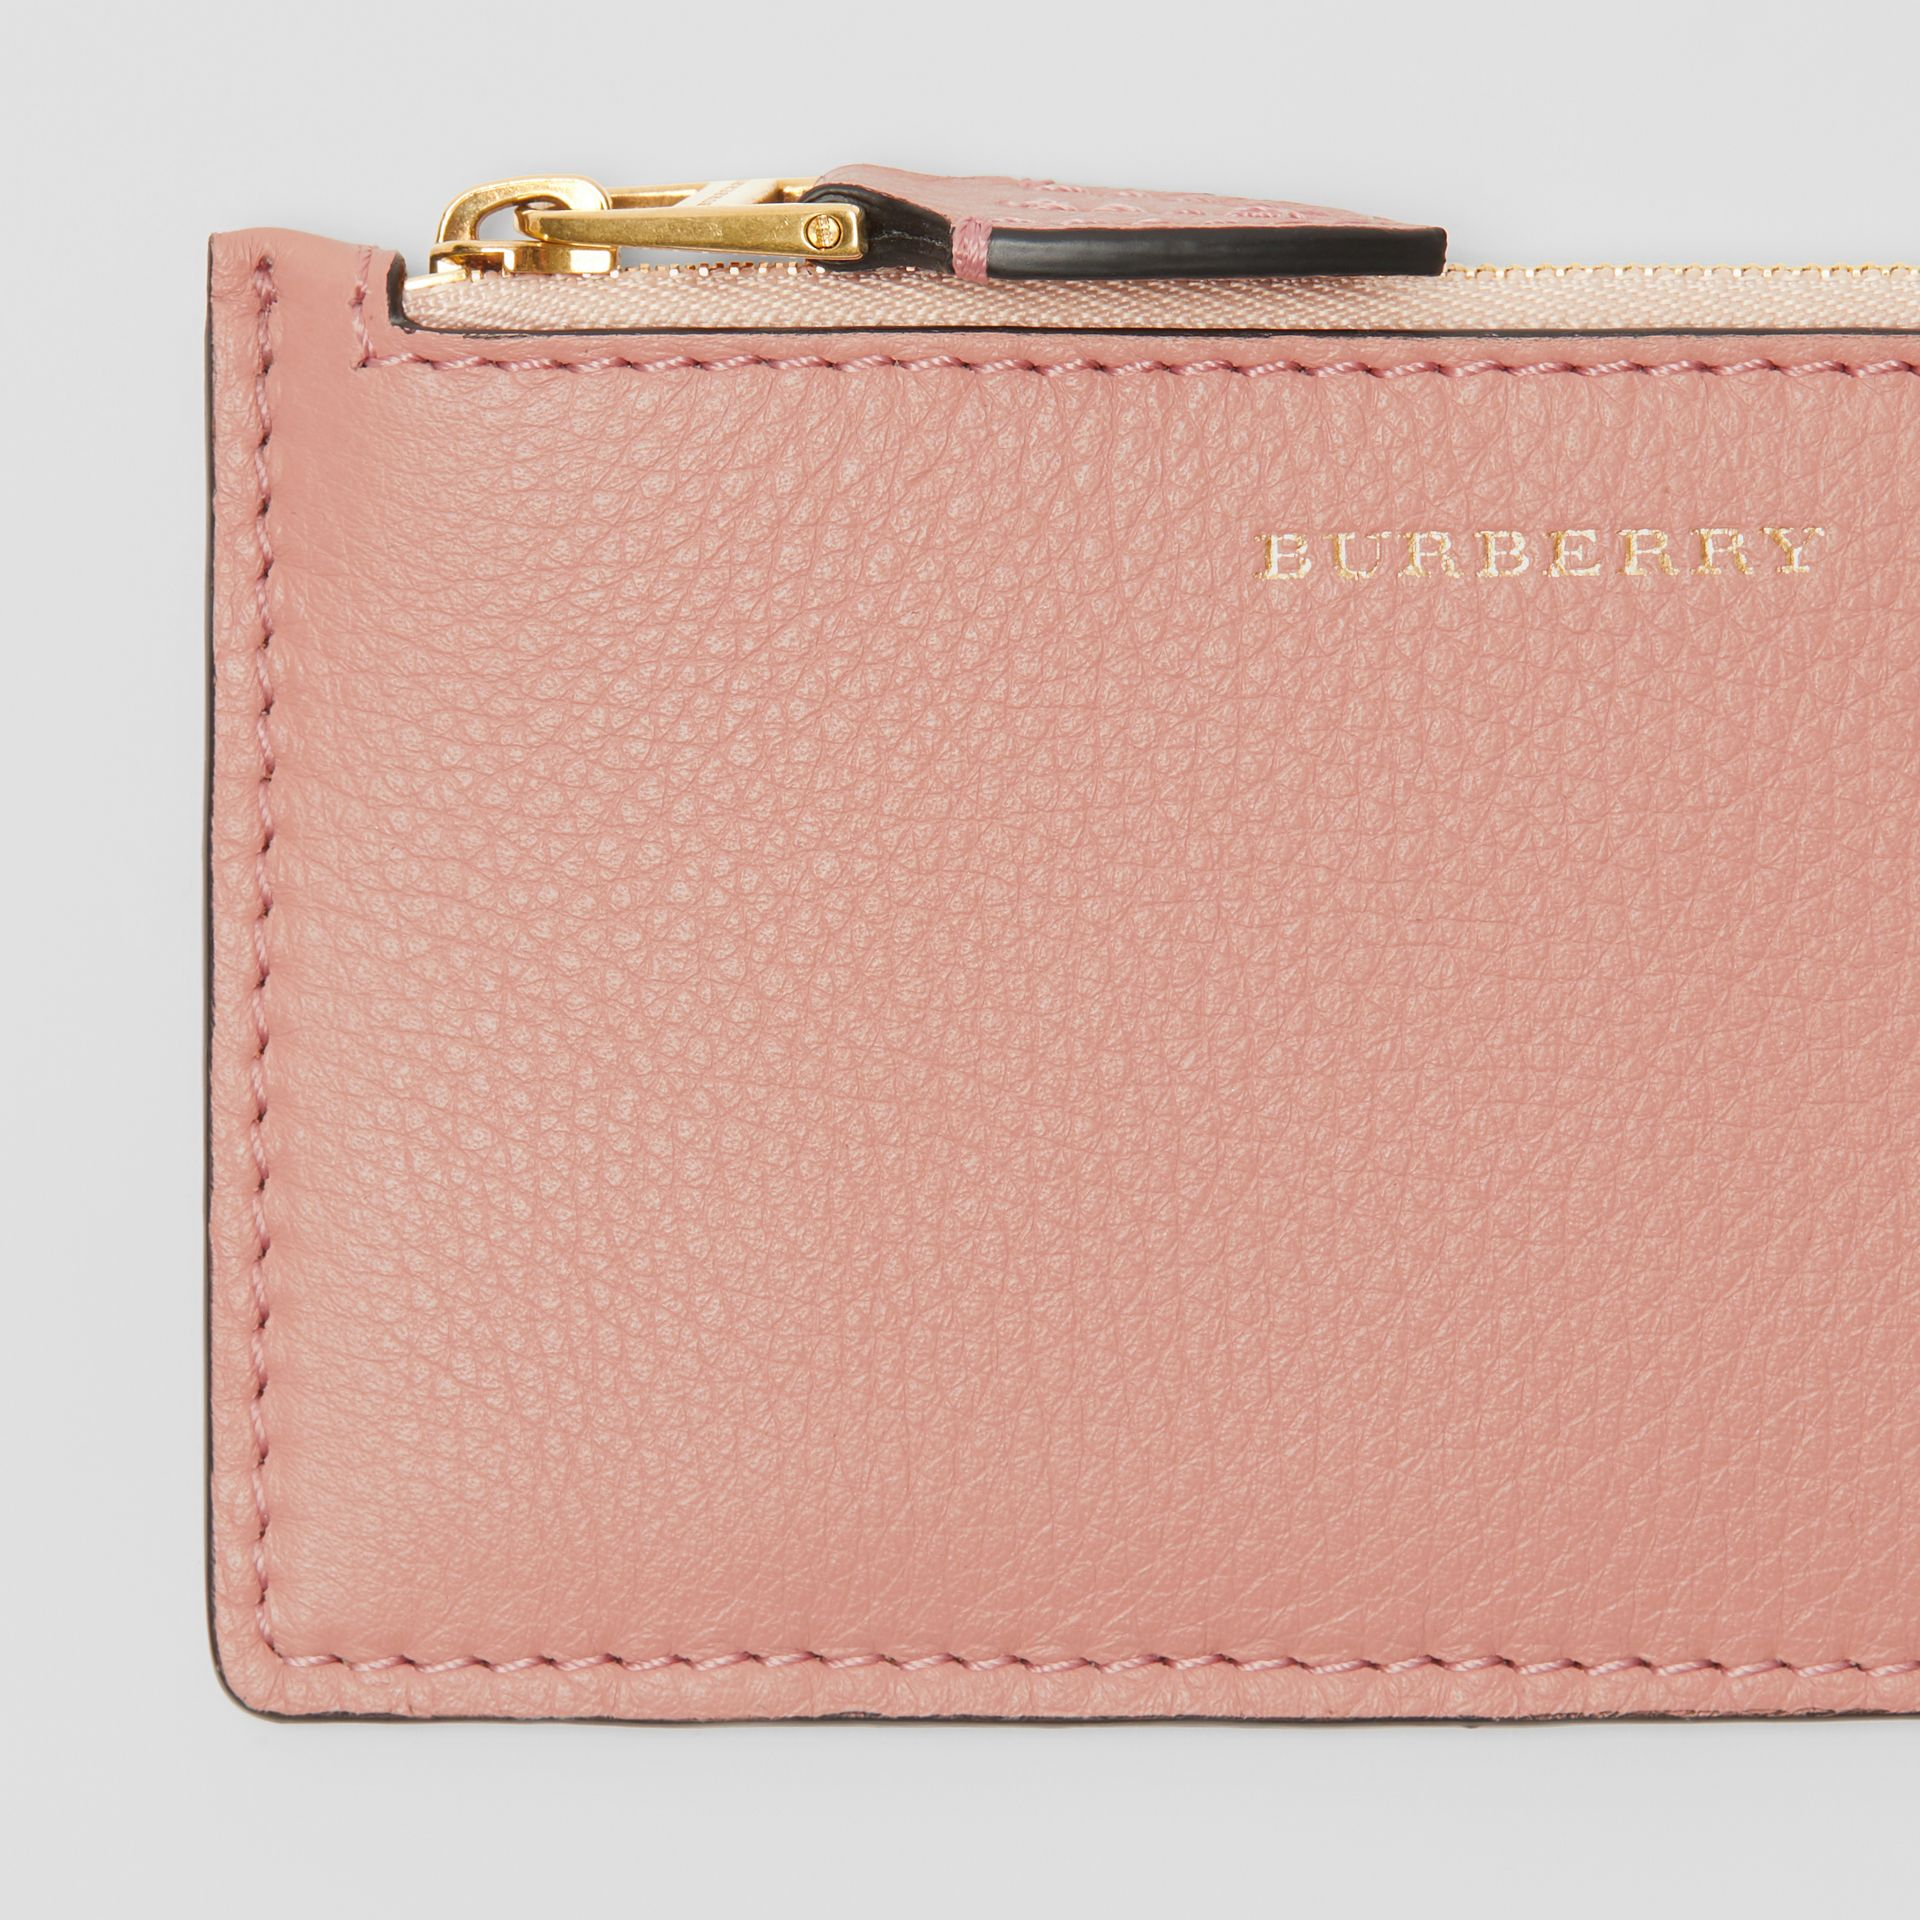 Two-tone Leather Zip Card Case in Ash Rose - Women | Burberry Singapore - gallery image 1